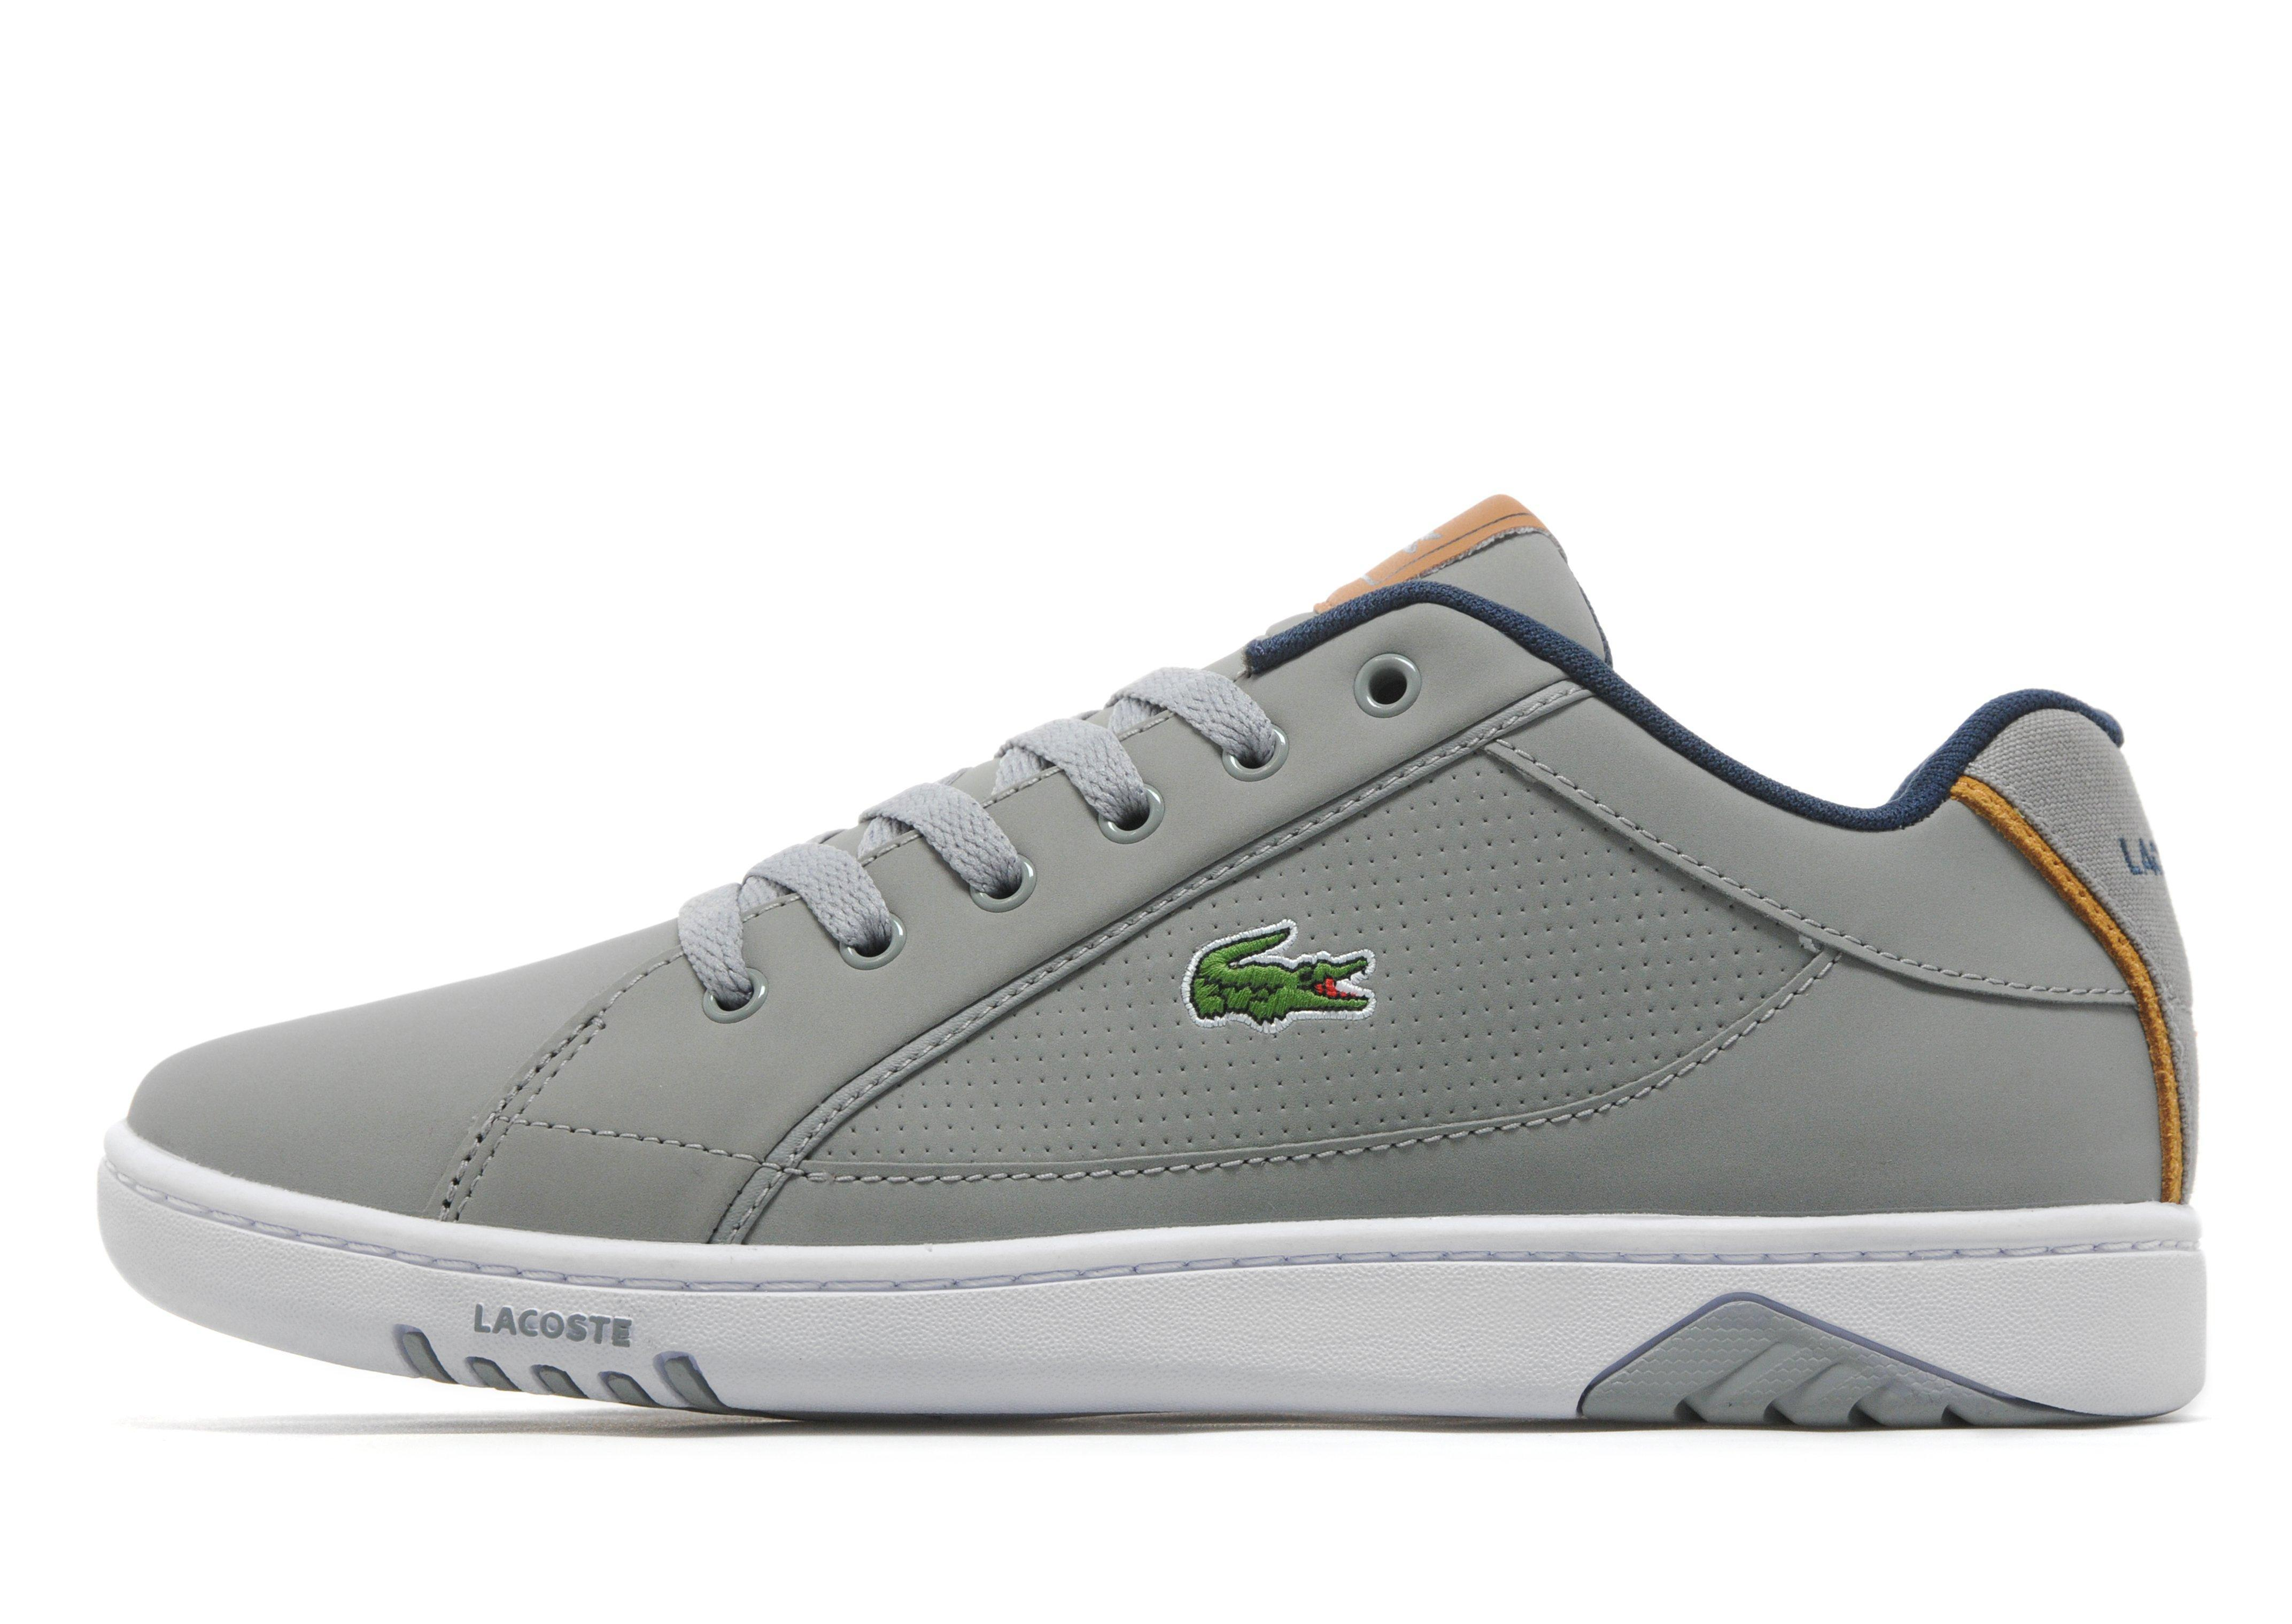 lacoste trainers deviation ii - 52% OFF